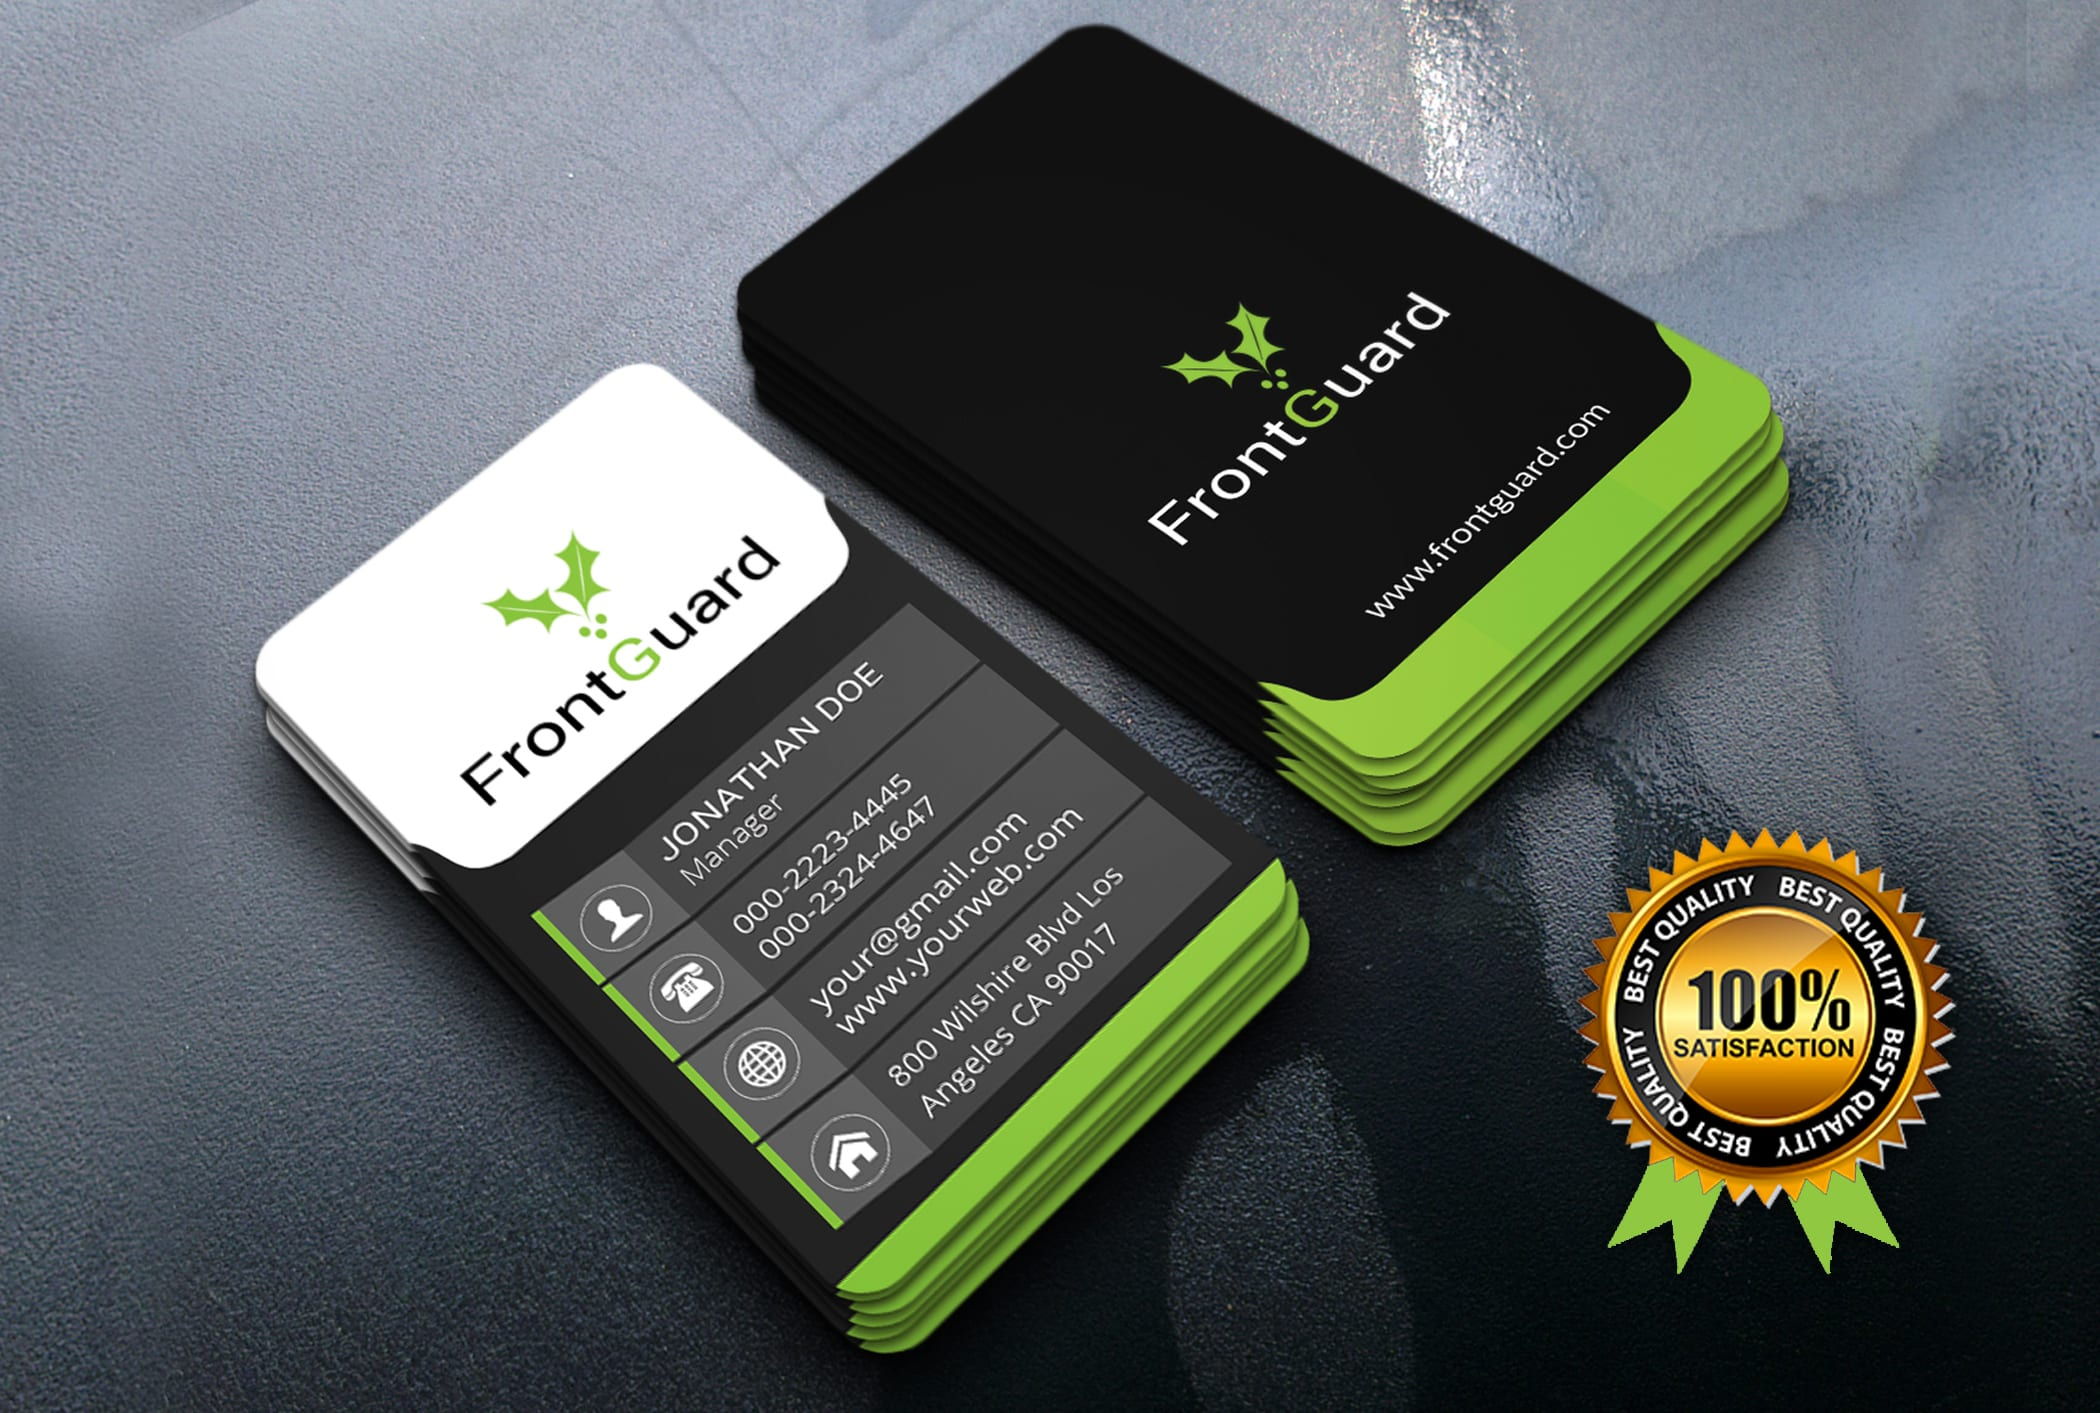 I will create your 2 different business card design concepts within 24 hours or less time